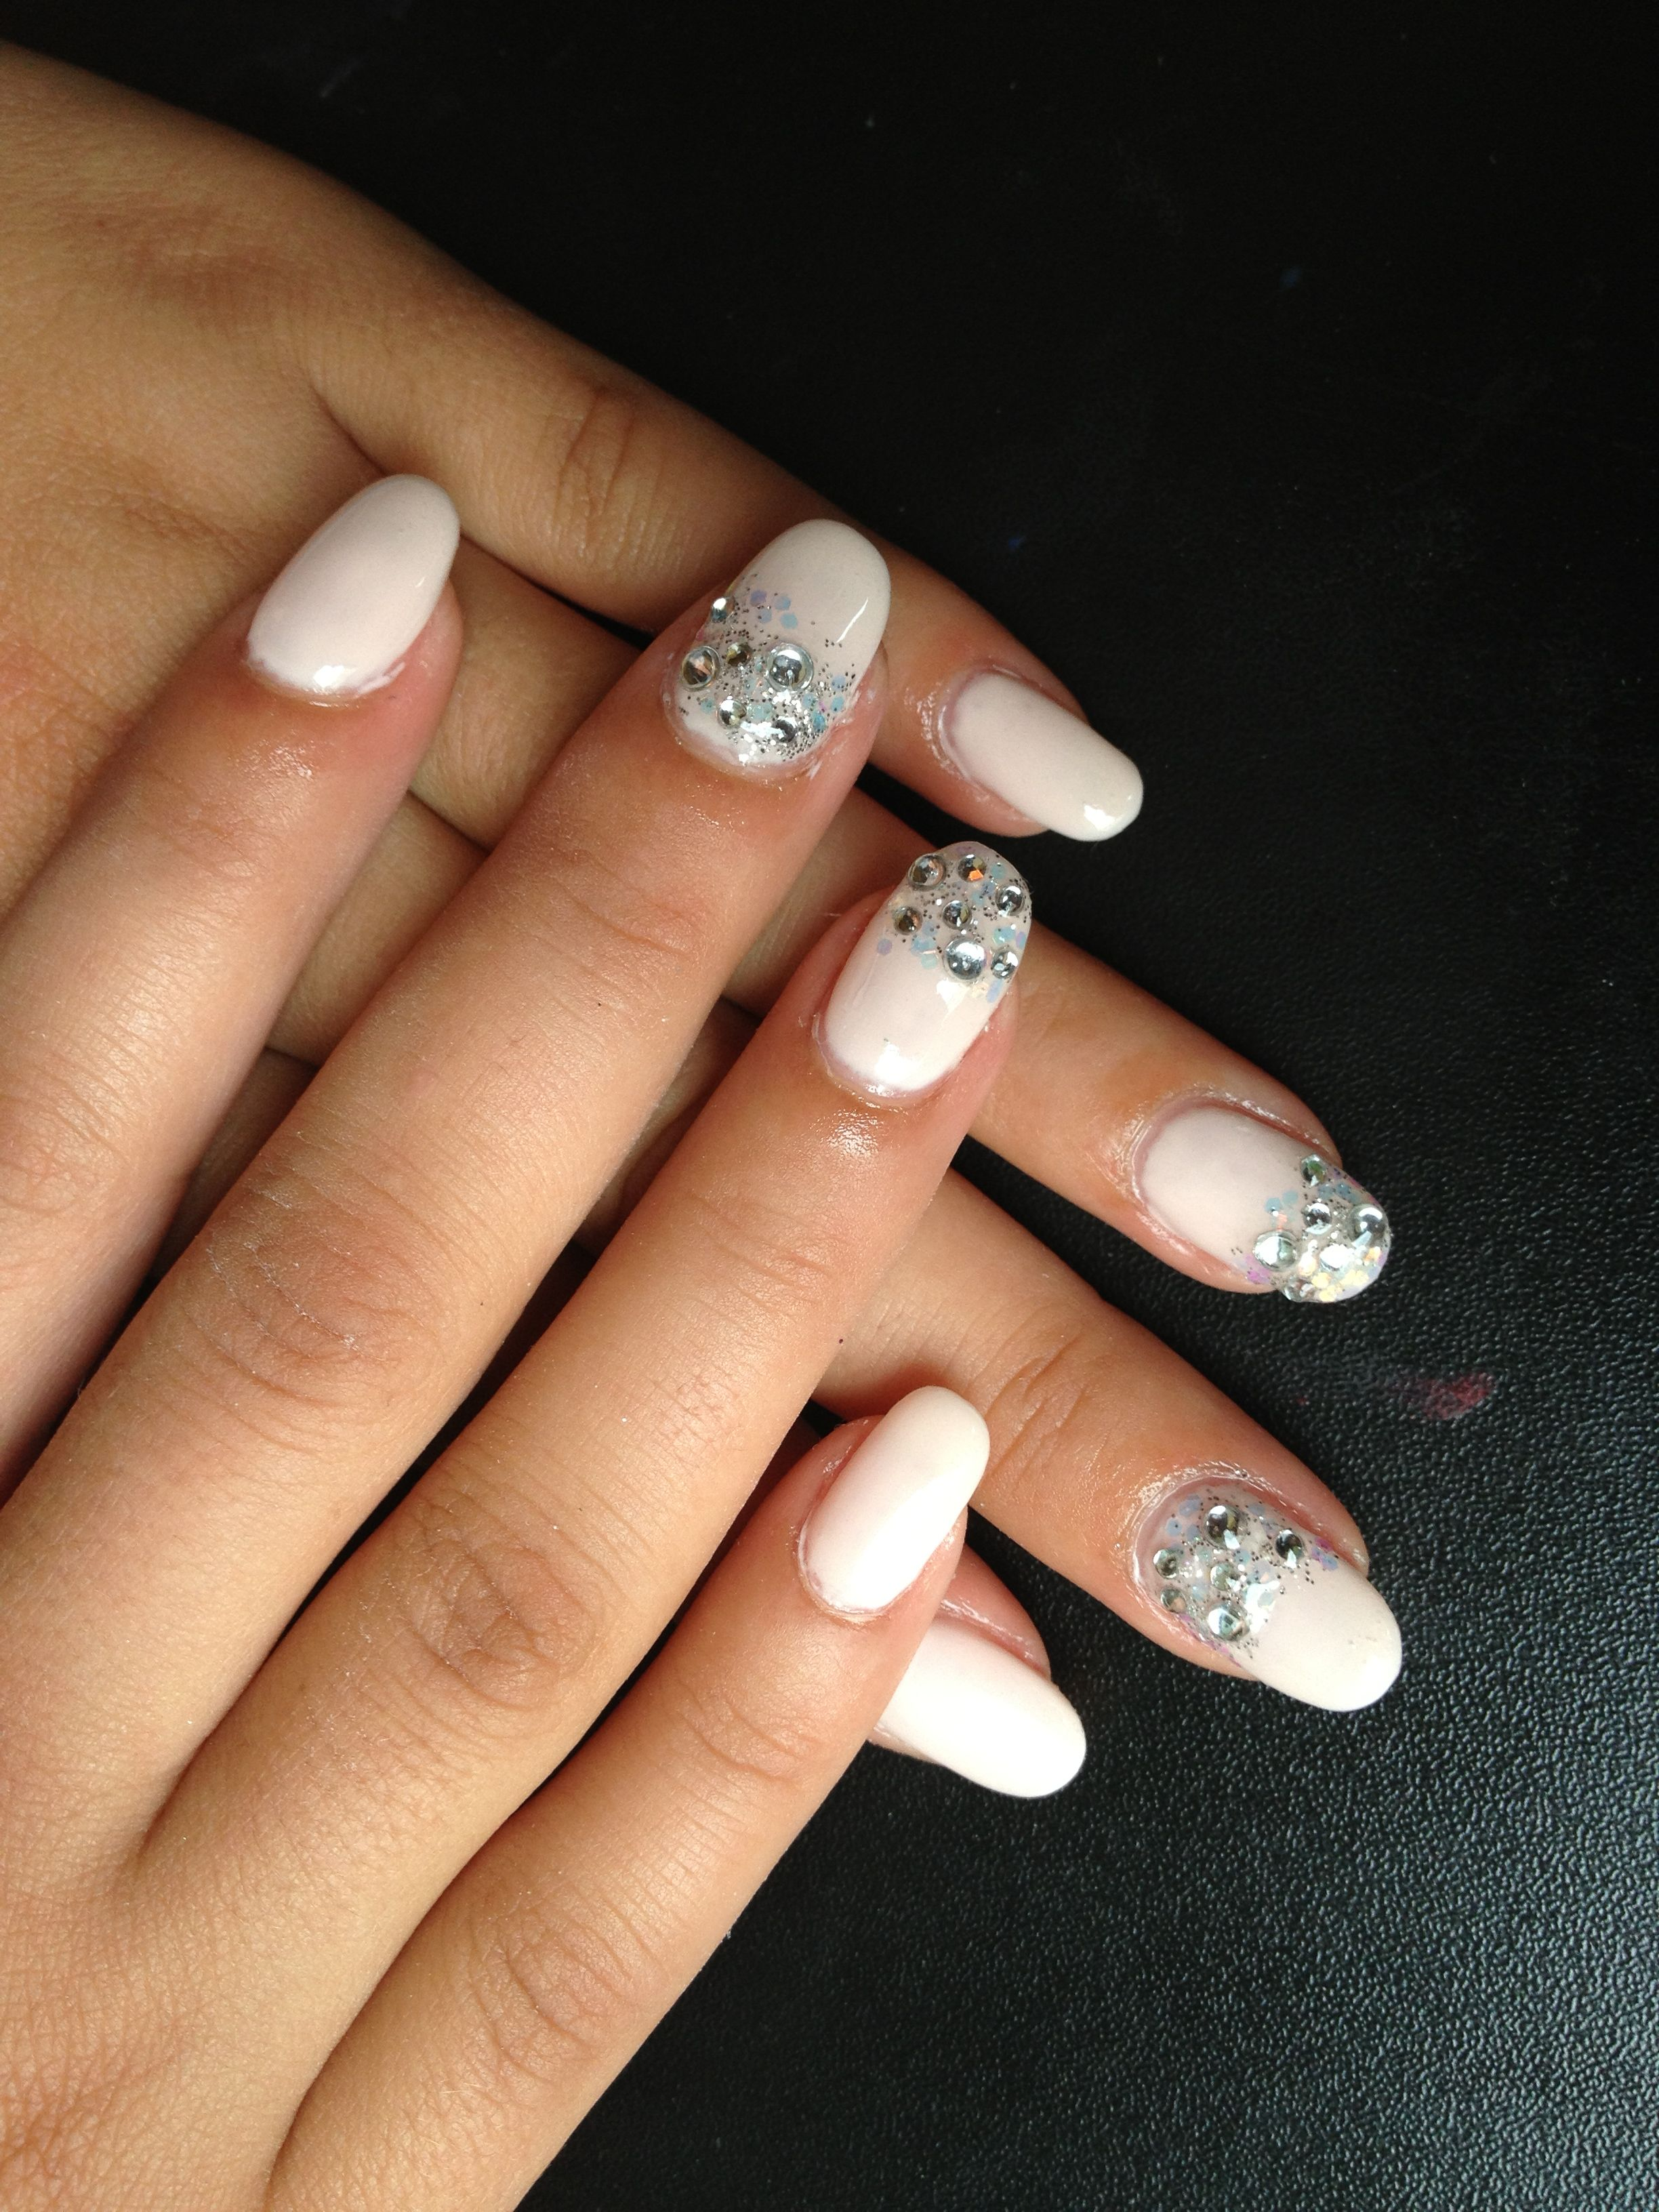 Pin By Laura Martin On Oh Honey That S Why You Have No Boyfriend Nails Plain Nails Nail Designs